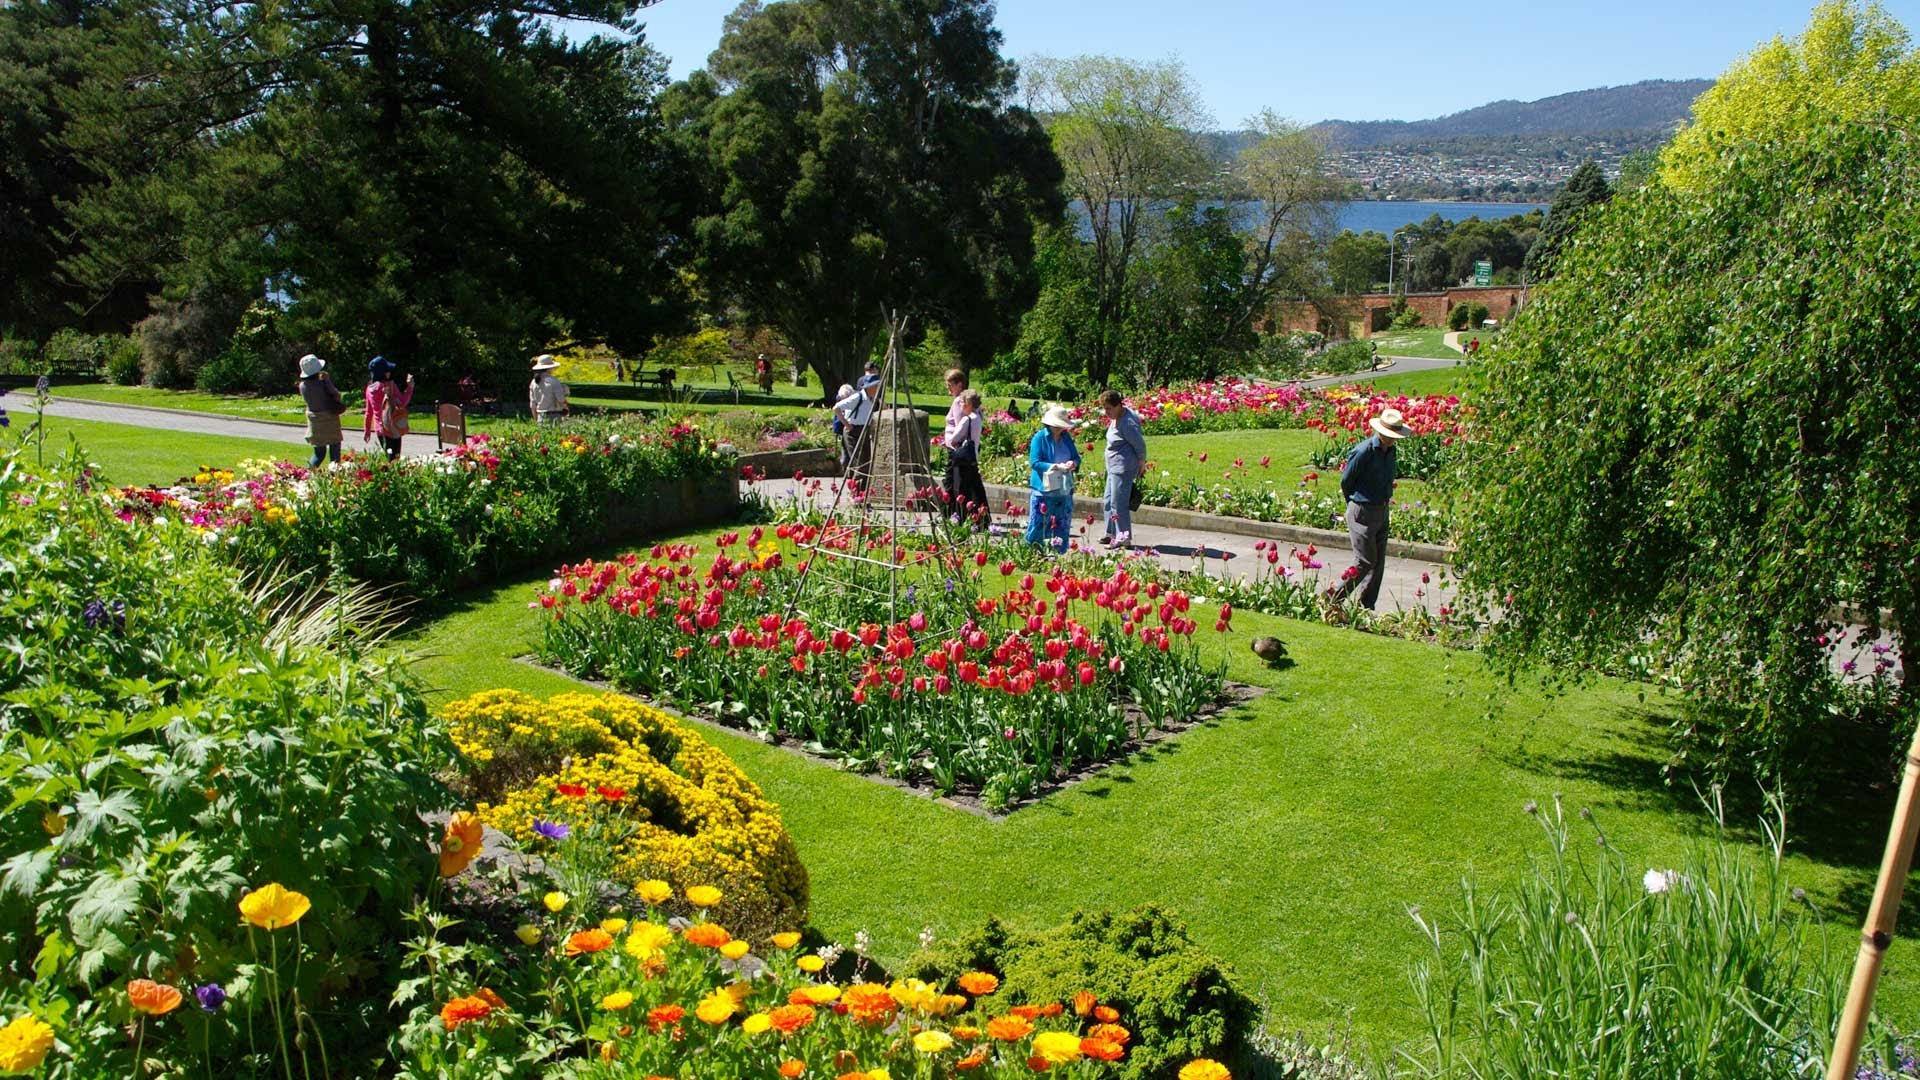 Visit the Royal Tasmania National Botanical Gardens